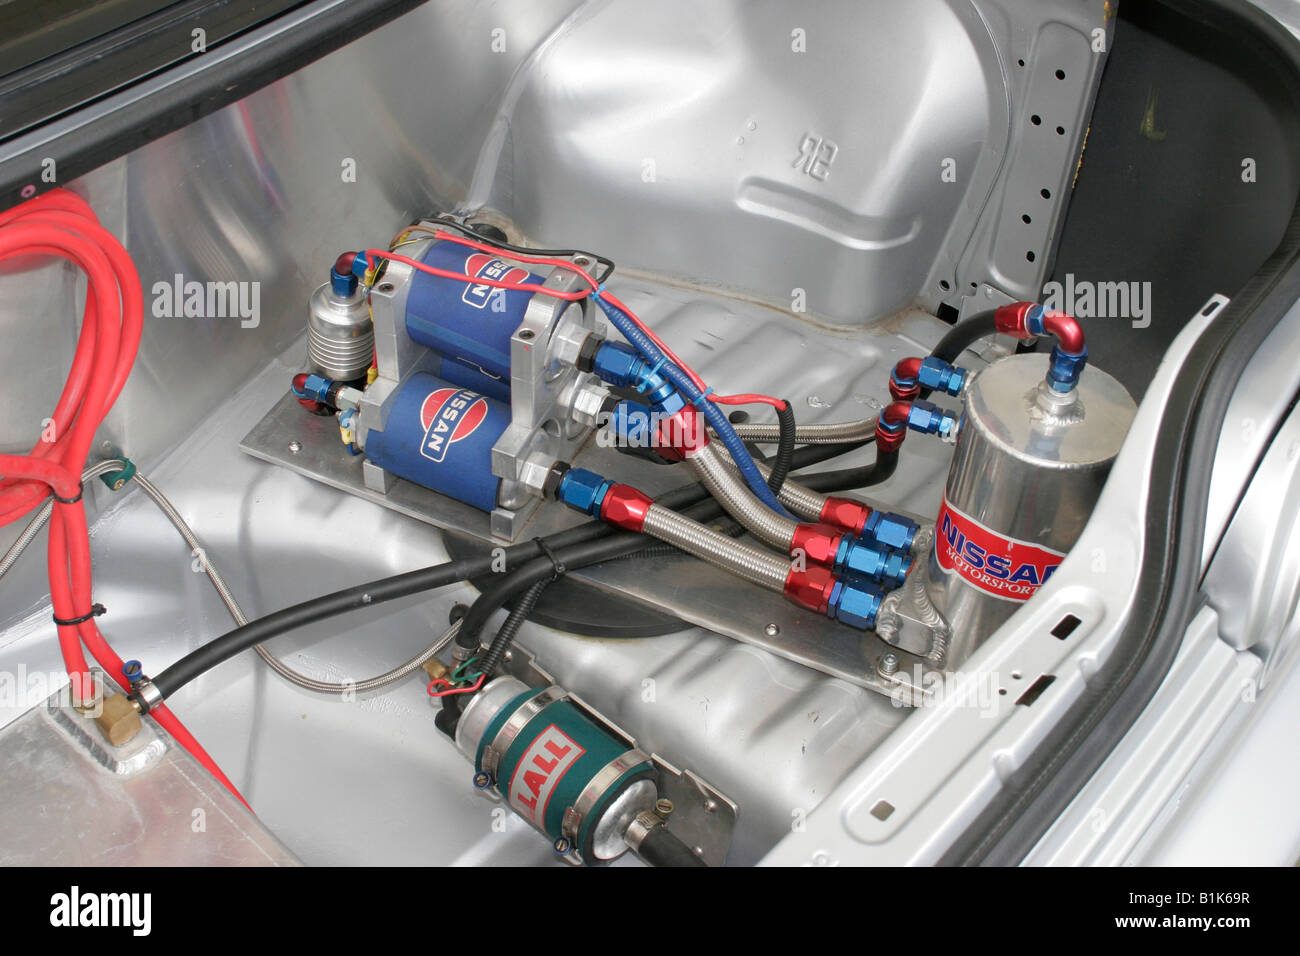 race car wiring diagram mopar www toyskids co \u2022 Chevy Race Car Flywheel extravegant fuel system in the boot of a modified race car race car electrical wiring race car electrical wiring